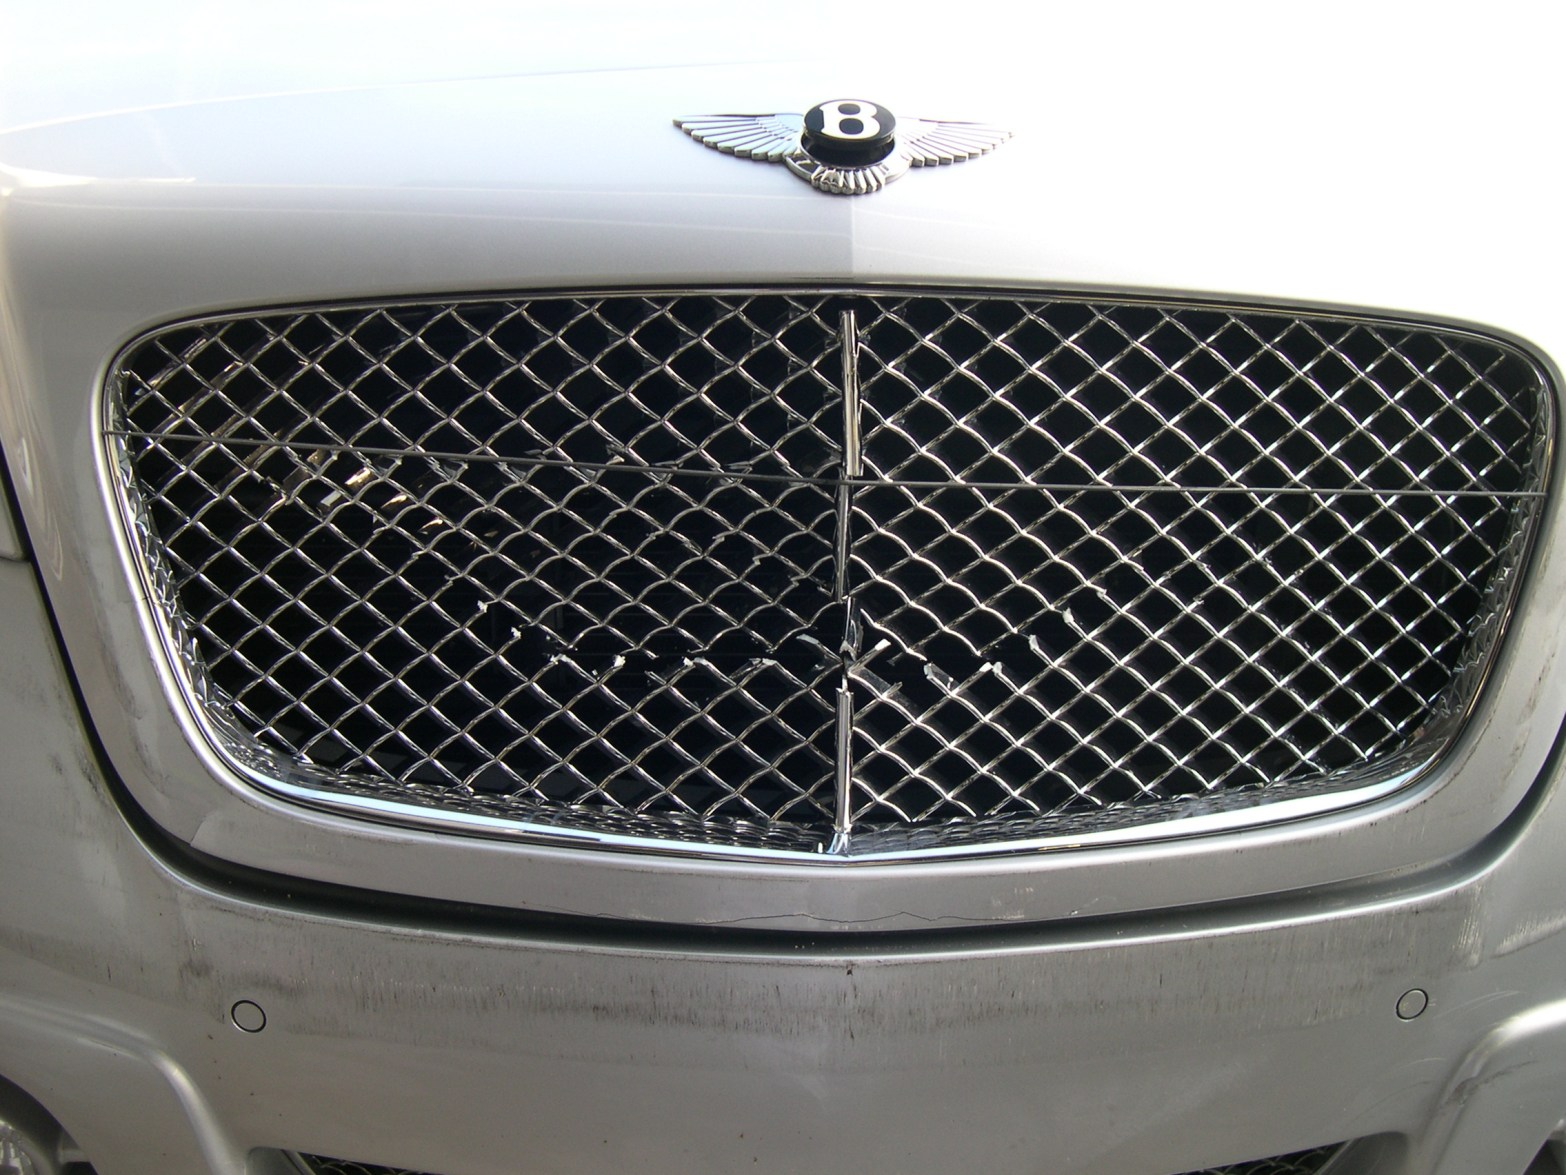 west-coast-body-and-paint-gray-bentley-15